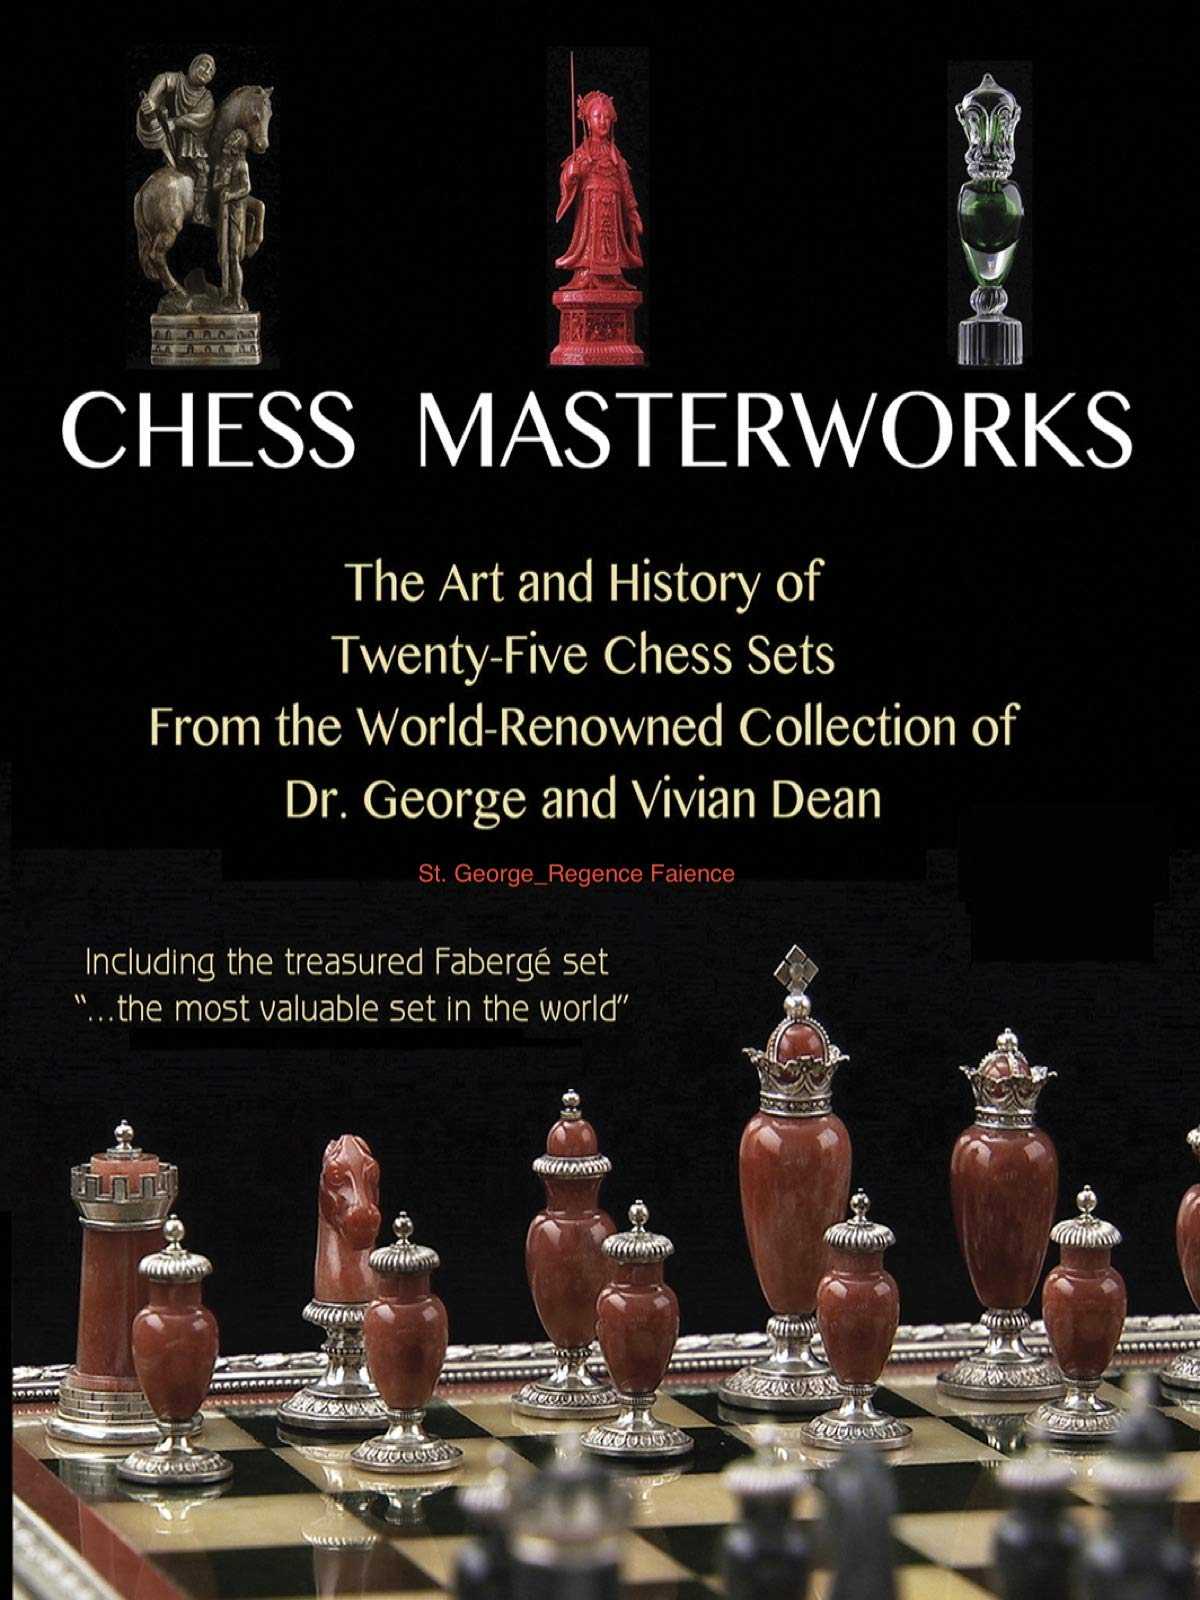 Chess Masterworks: St. George_Regence Faience on Amazon Prime Video UK